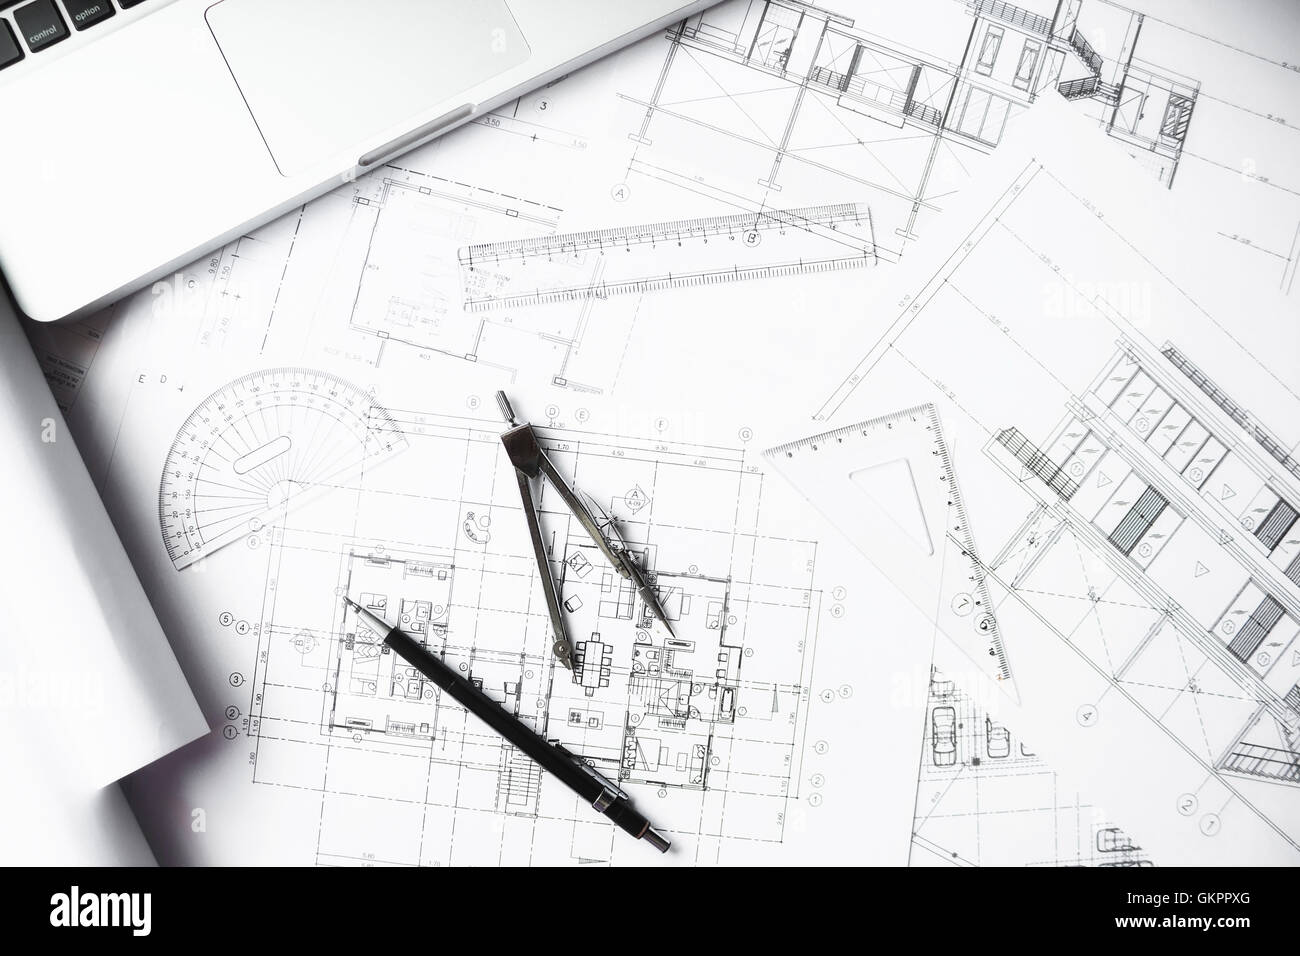 architect, architecture, blueprint, business, businessman, candid, casual, coffee,construction,engineer - Stock Image